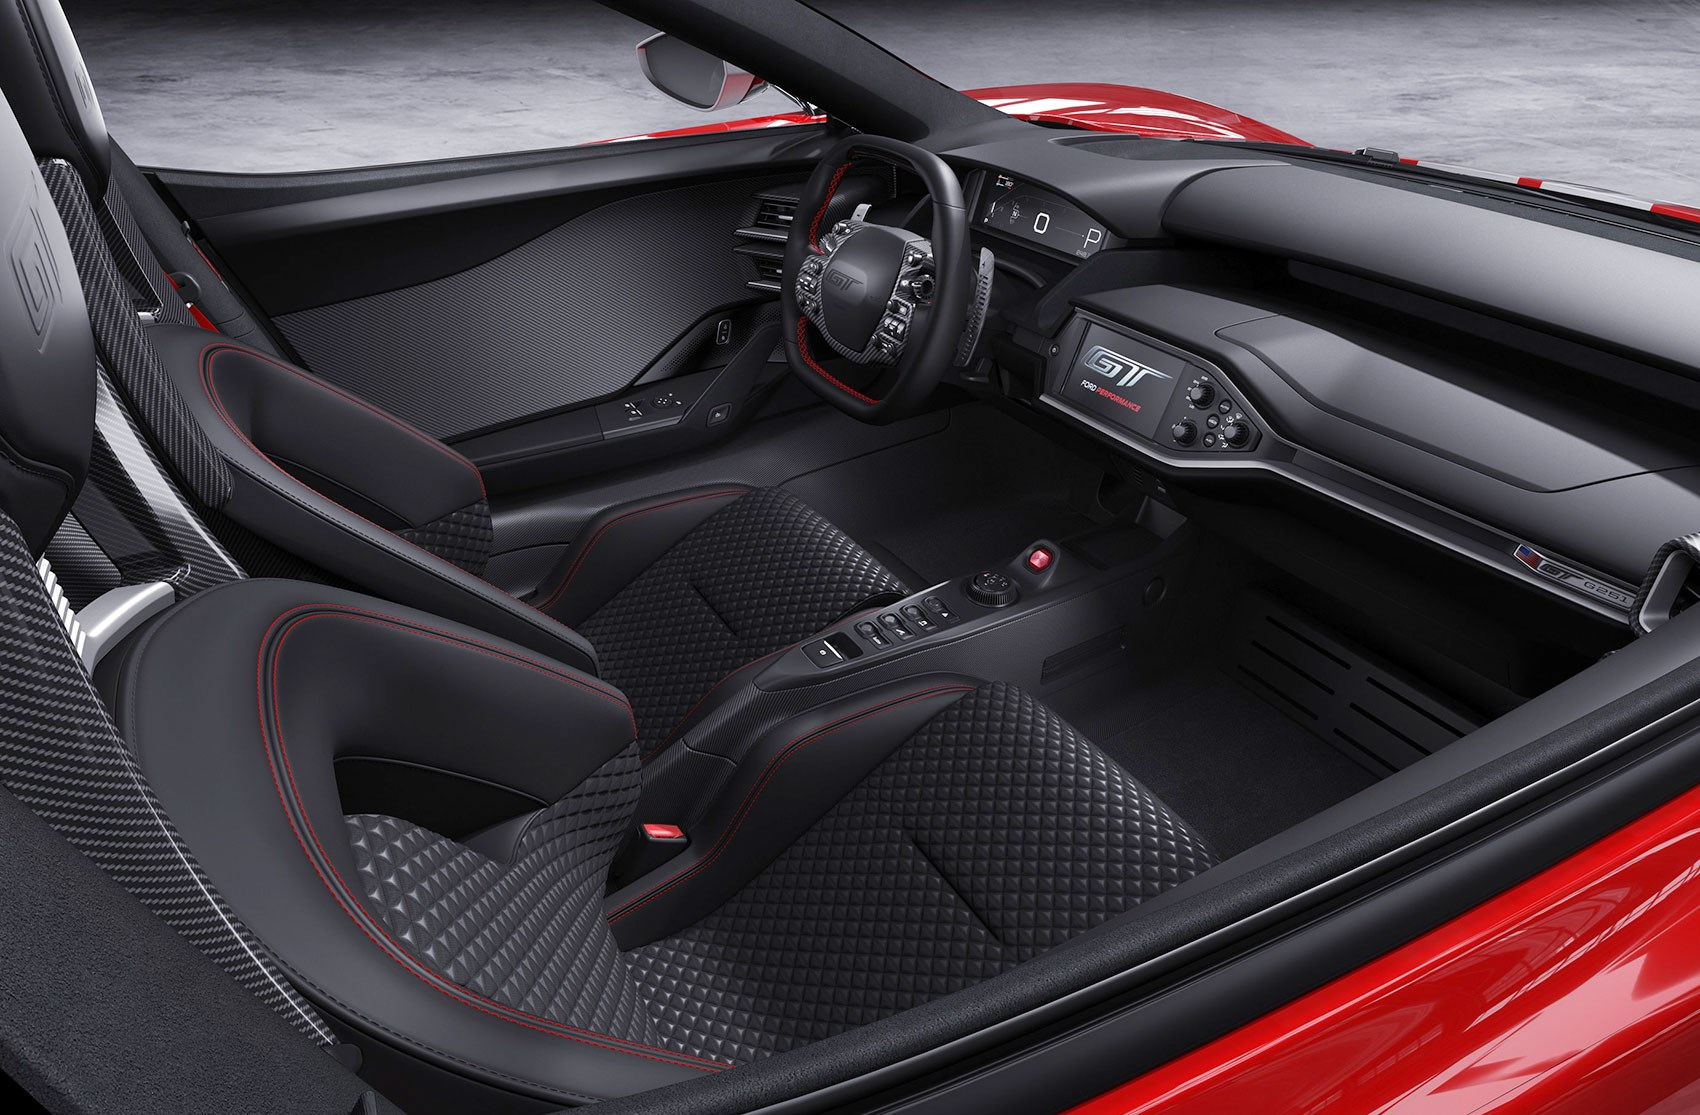 The Ford Gt  Heritage Edition Red Stitching Stainless Appliques Scattered Around Ford Gt Cabin A Limited